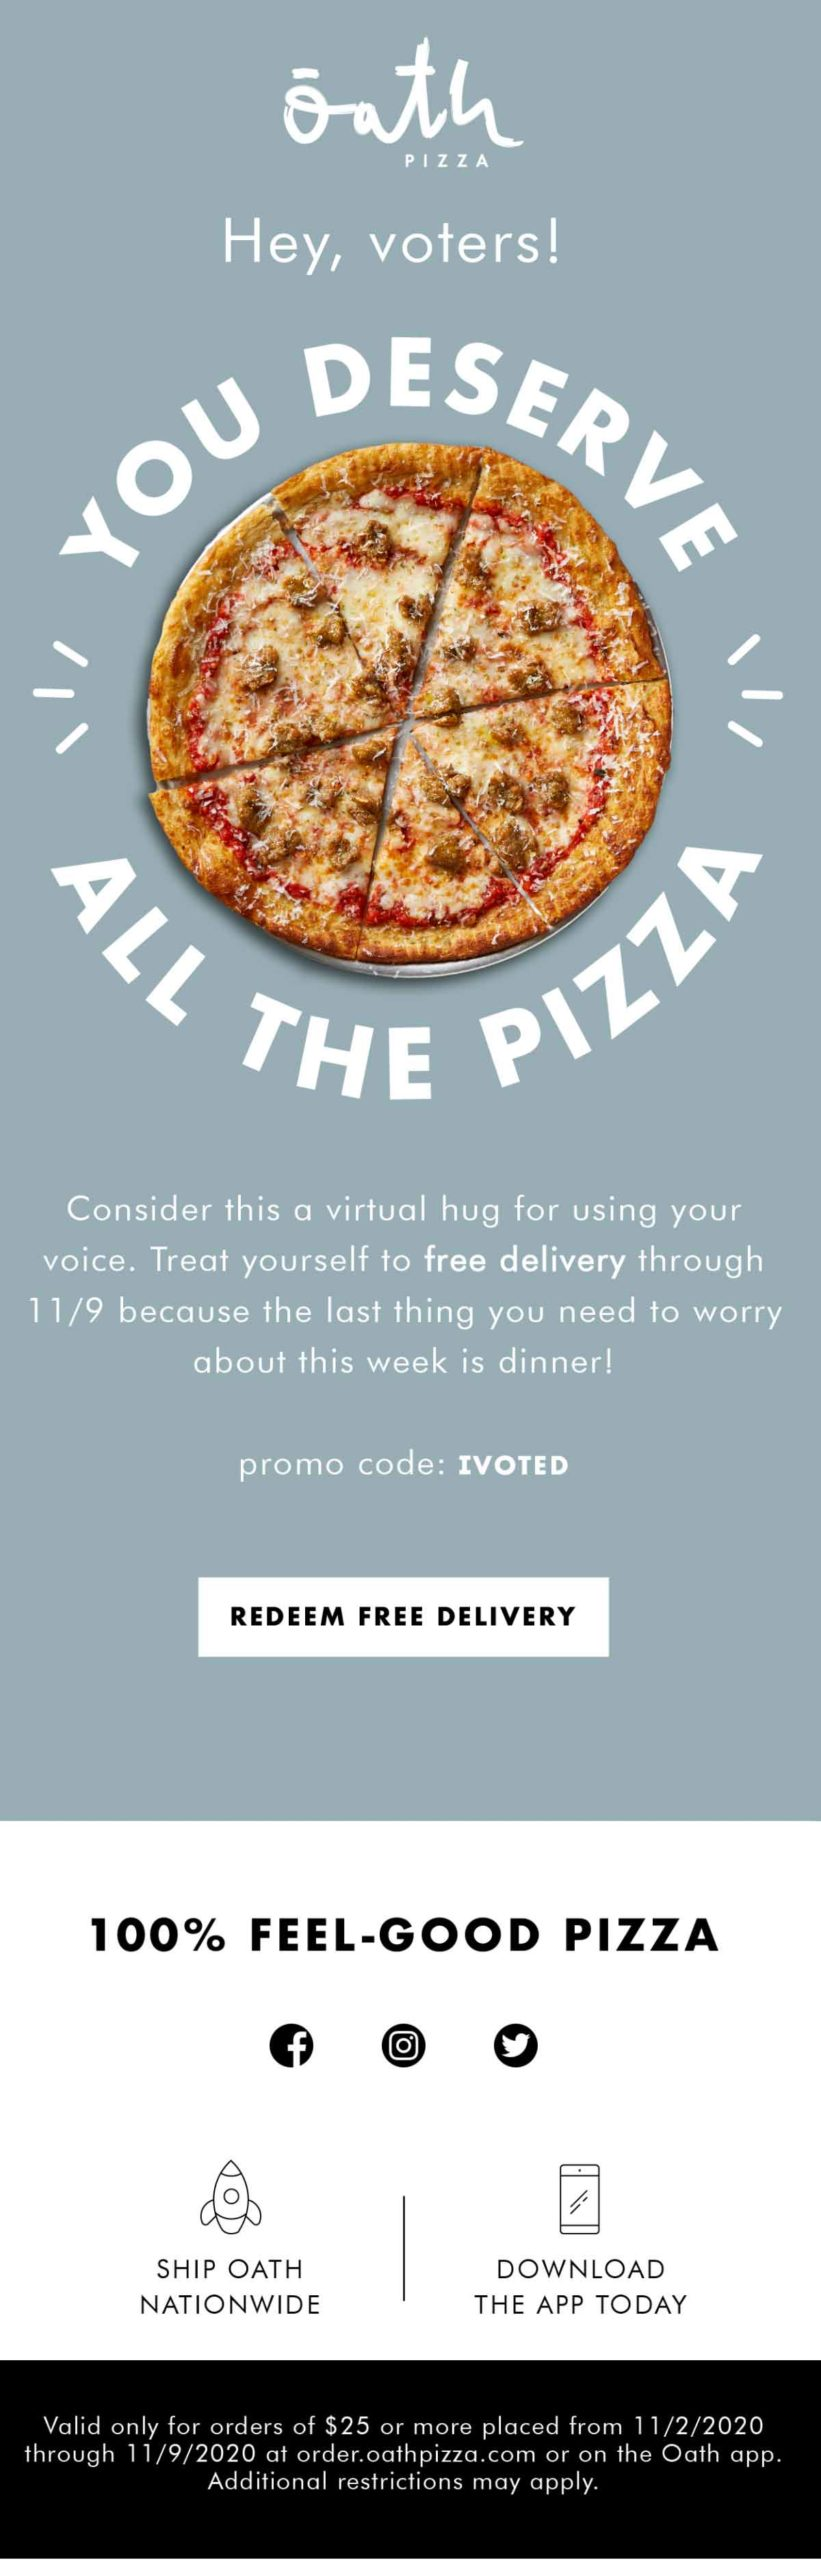 Oath Pizza hey voters email